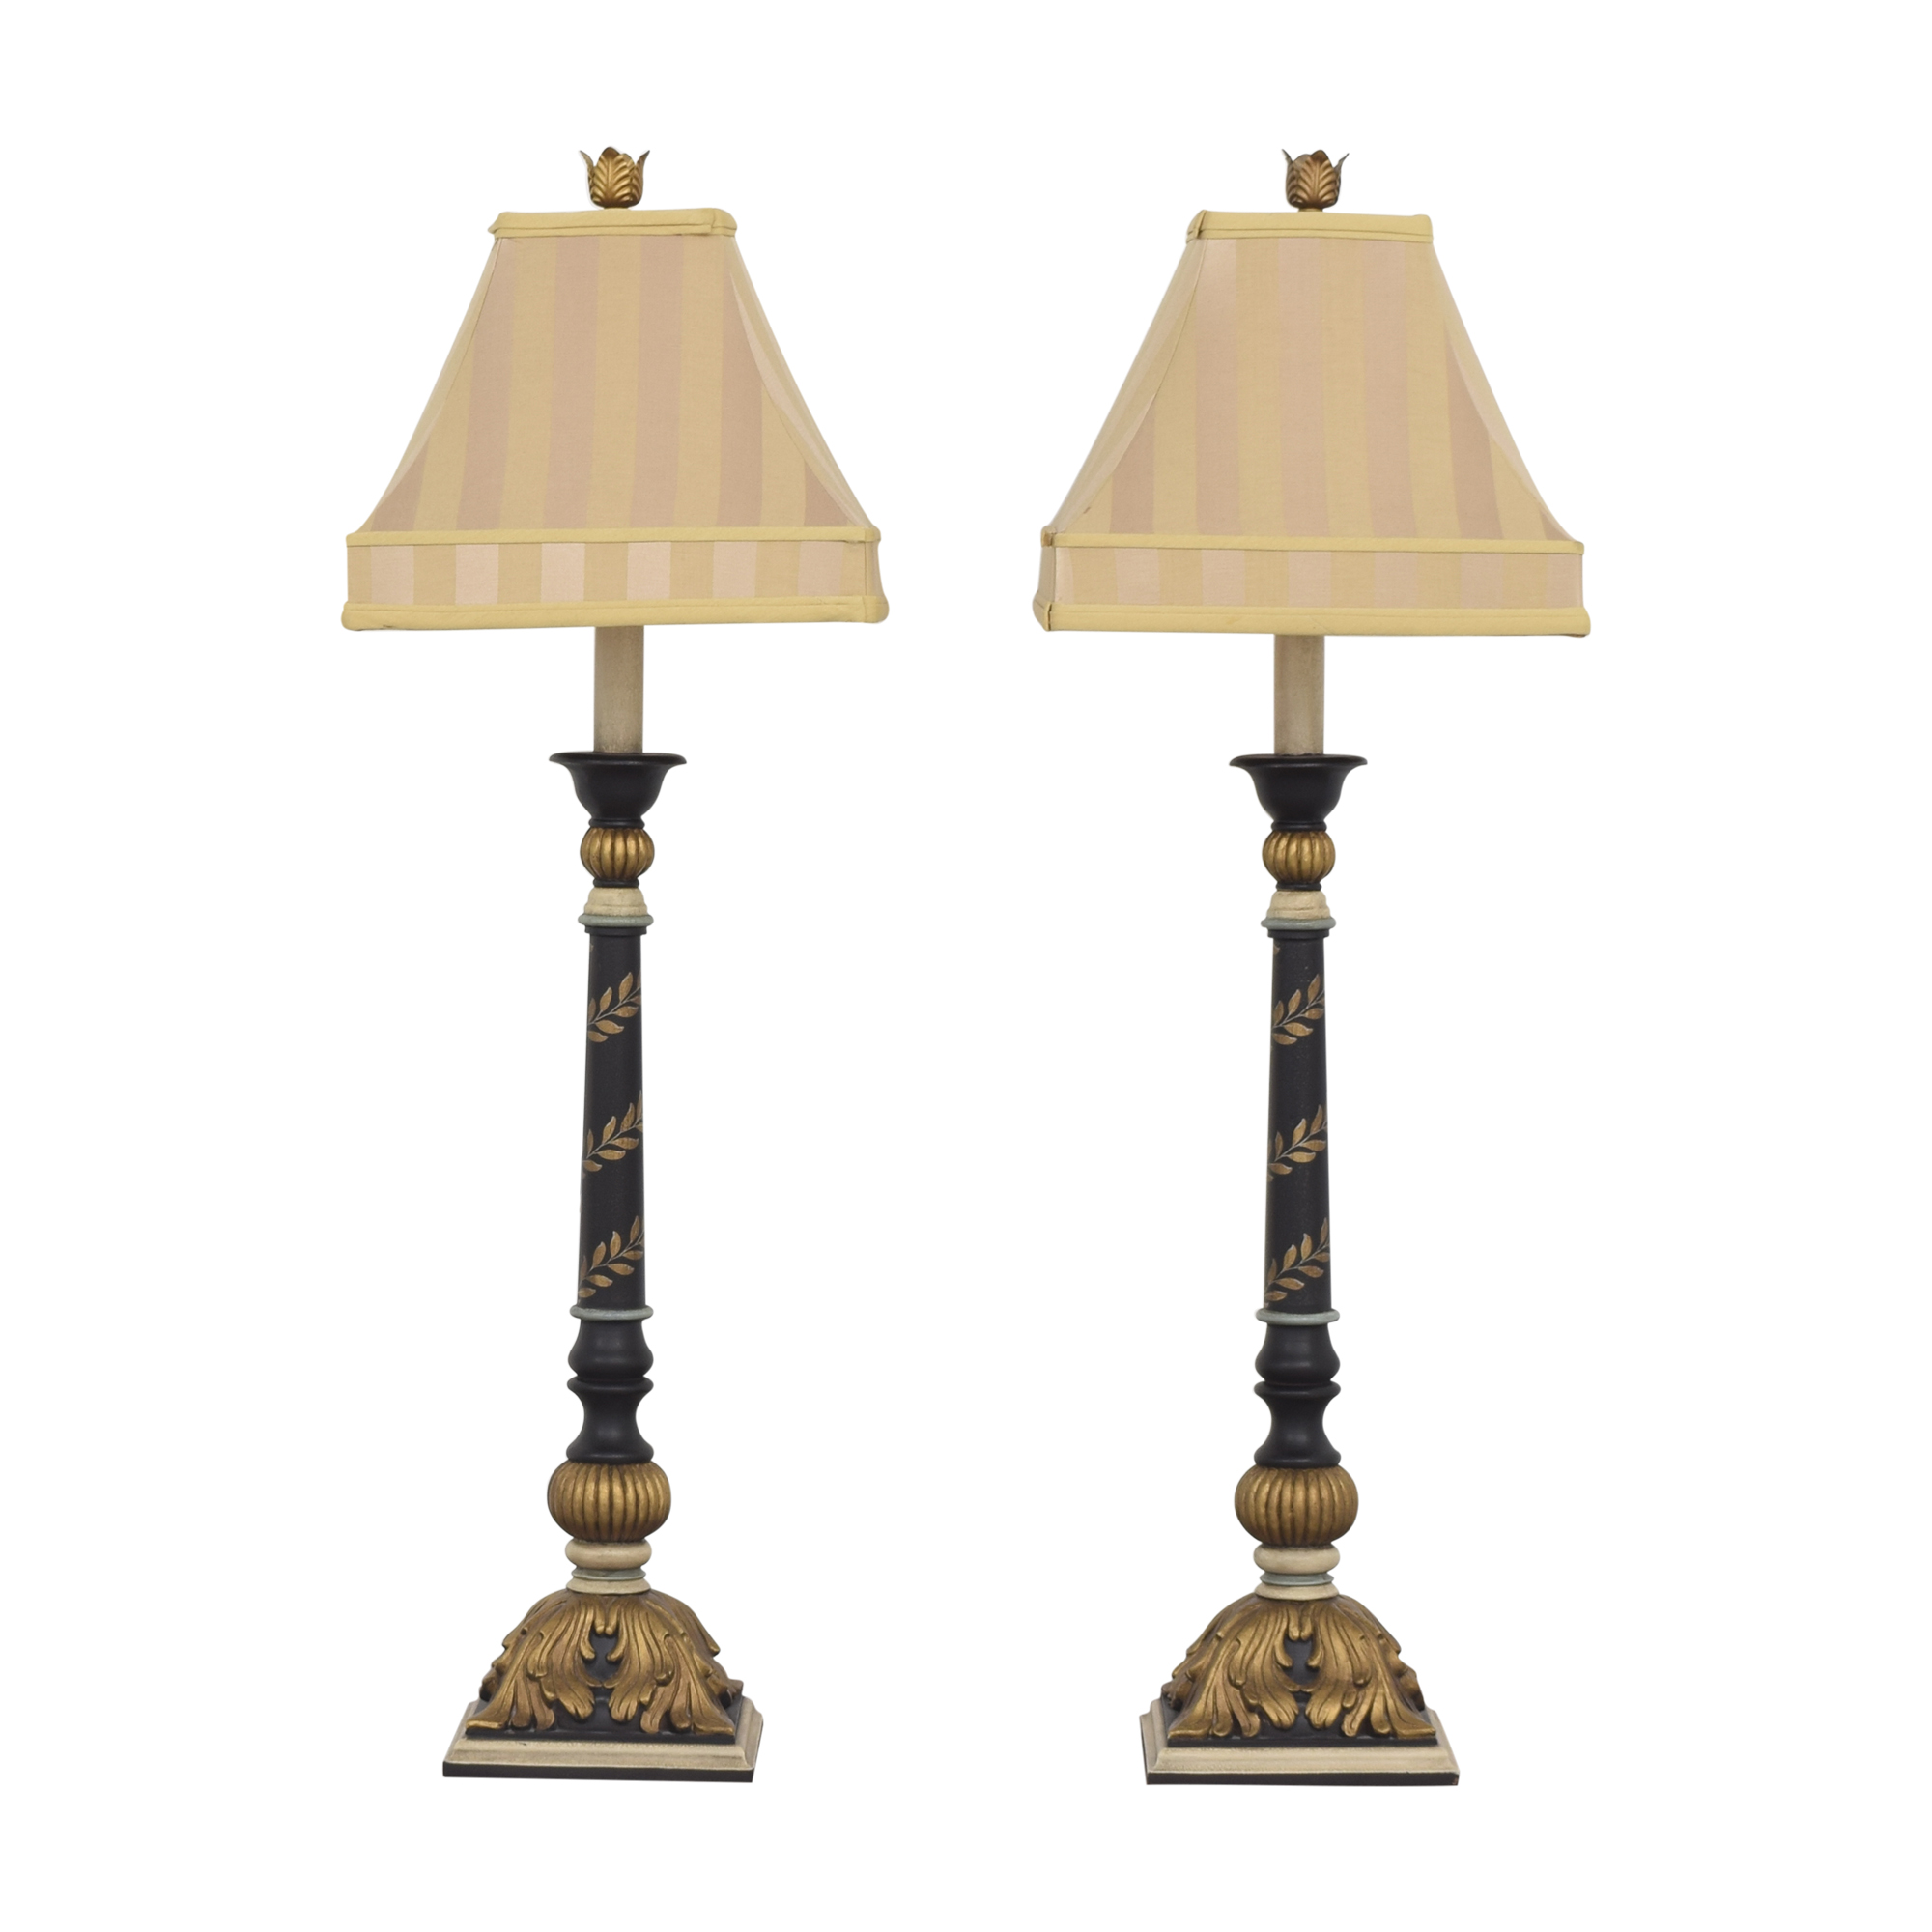 Ethan Allen Ethan Allen Tall Painted Table Lamps dimensions